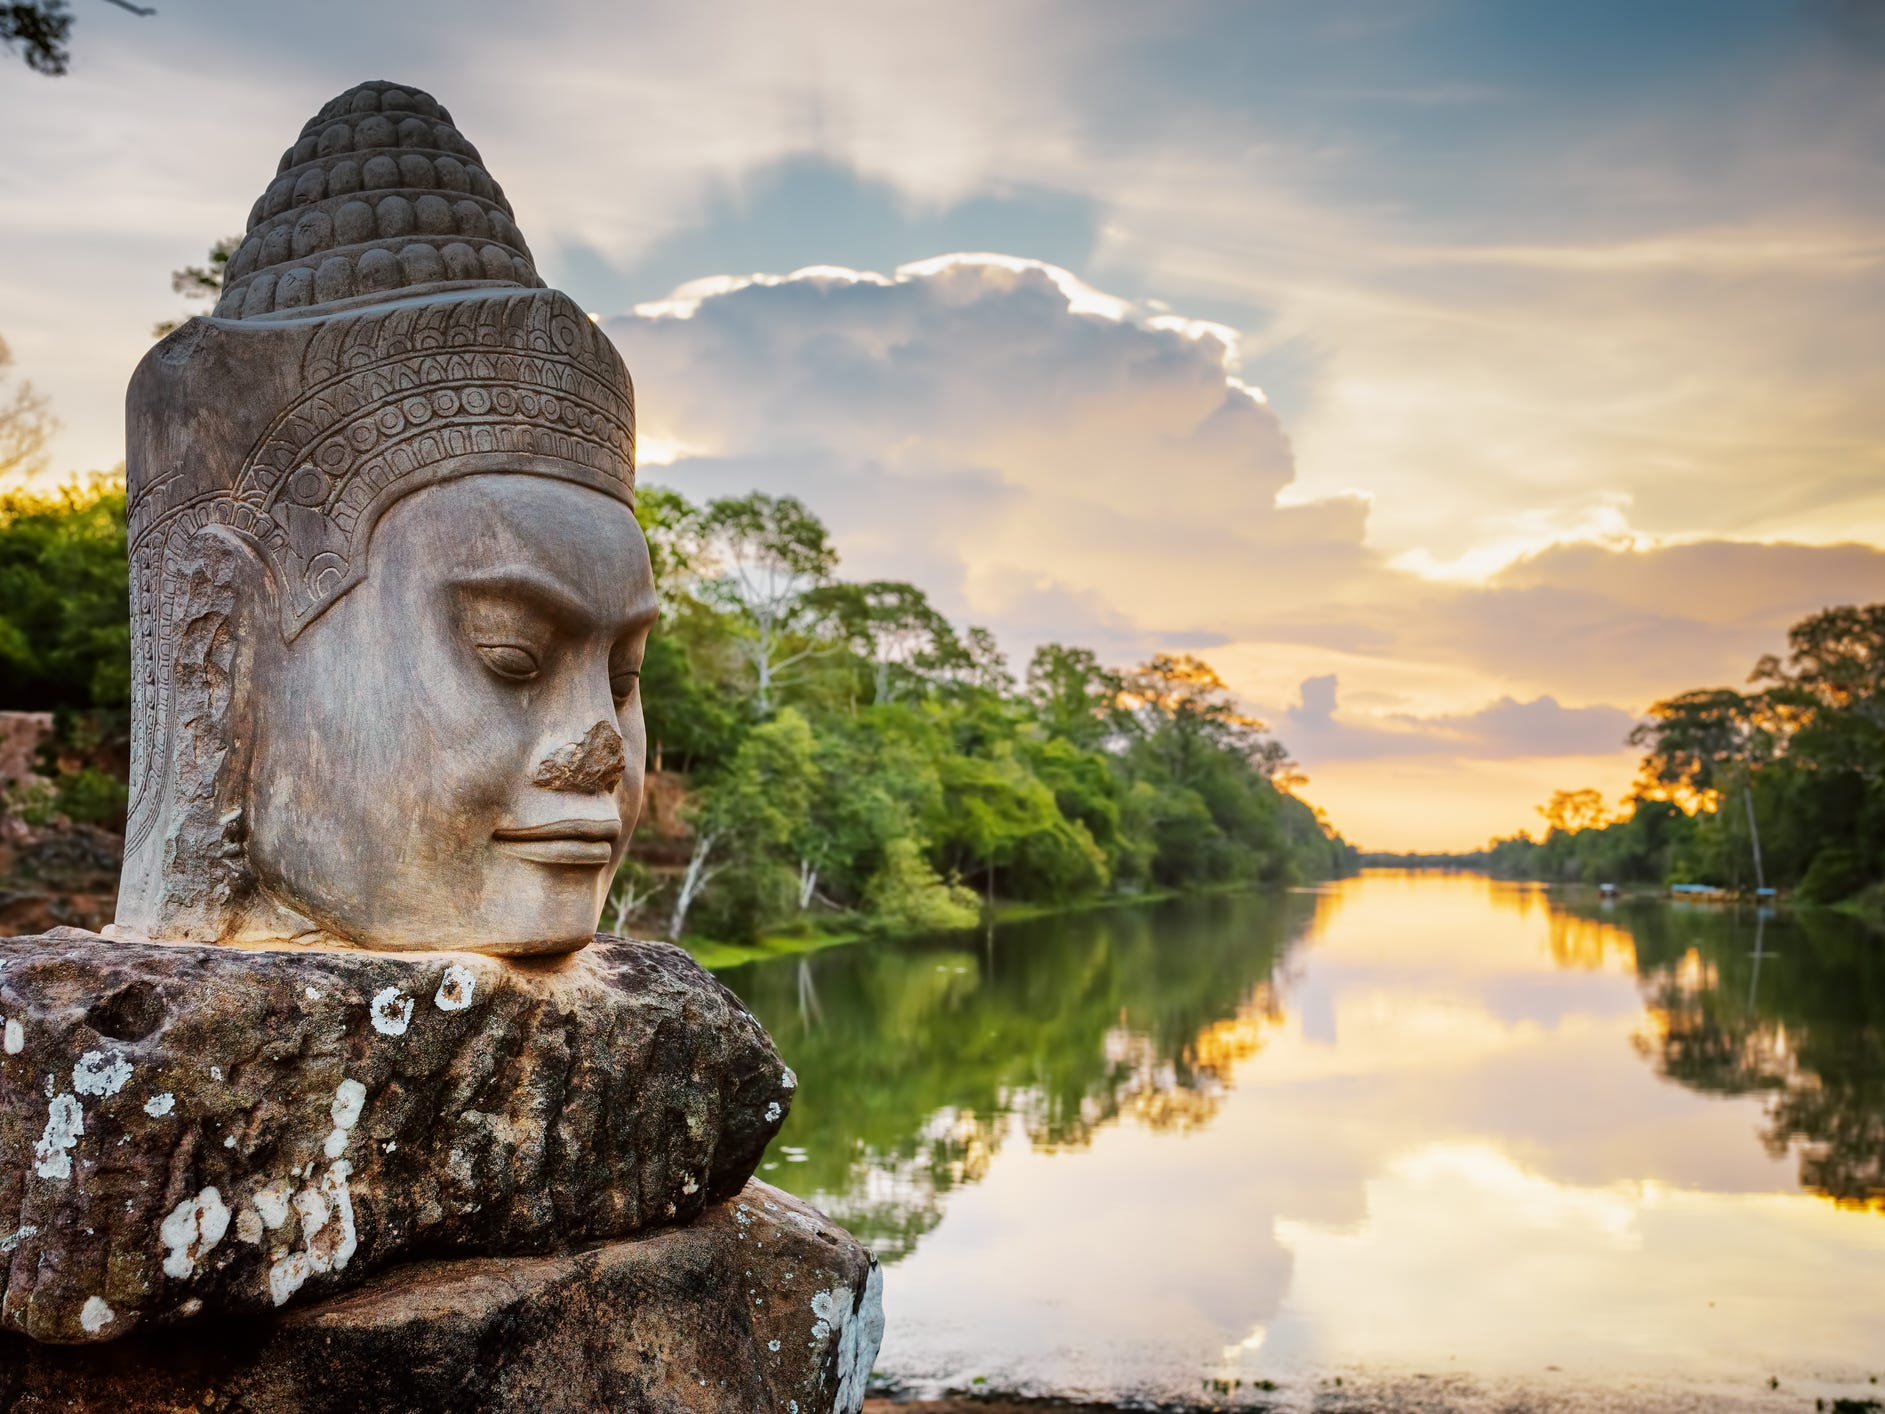 Southeast Asia: Laos and Cambodia have seen lower airfare this winter season with round-trip prices below $1,000 to the region for cities like Siem Reap. New service from Thai Airways connects you to cities like Ho Chi Minh City (Vietnam), Yangon (Mynamar) and Phnom Penh (Cambodia) via Bangkok, so you can maximize your options. The warm and dry high season in the region stretches from January to March, so you don't have to worry about monsoons and other weather threats in winter.